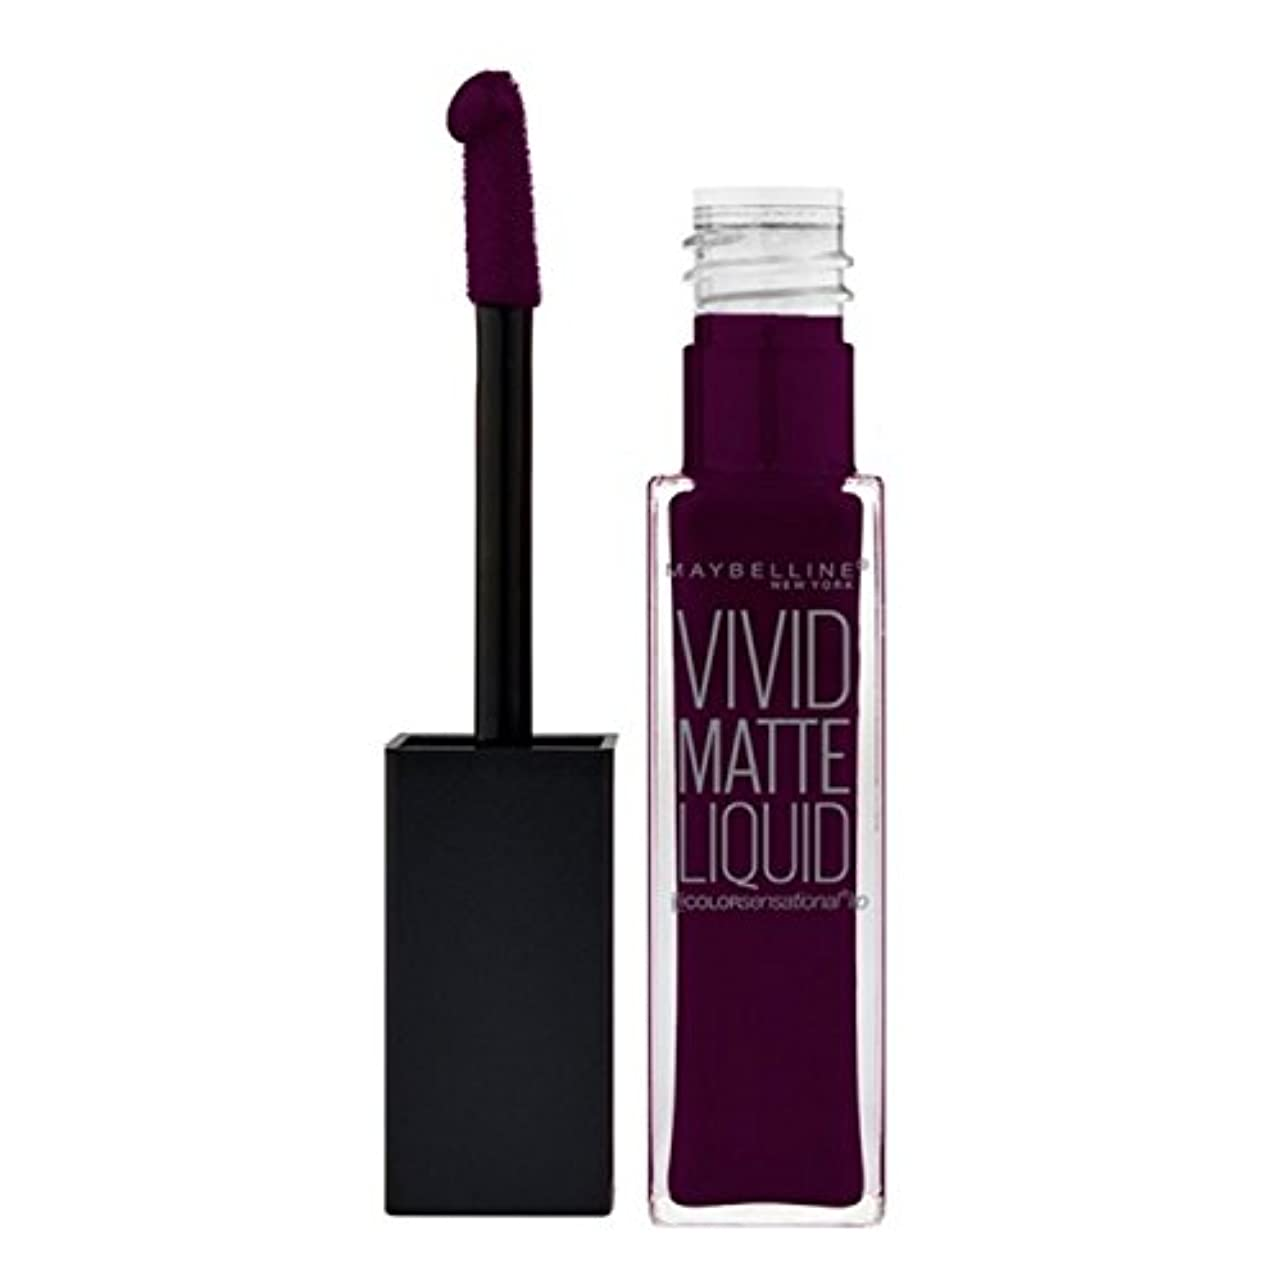 疼痛本を読む提供MAYBELLINE Vivid Matte Liquid - Possessed Plum (並行輸入品)